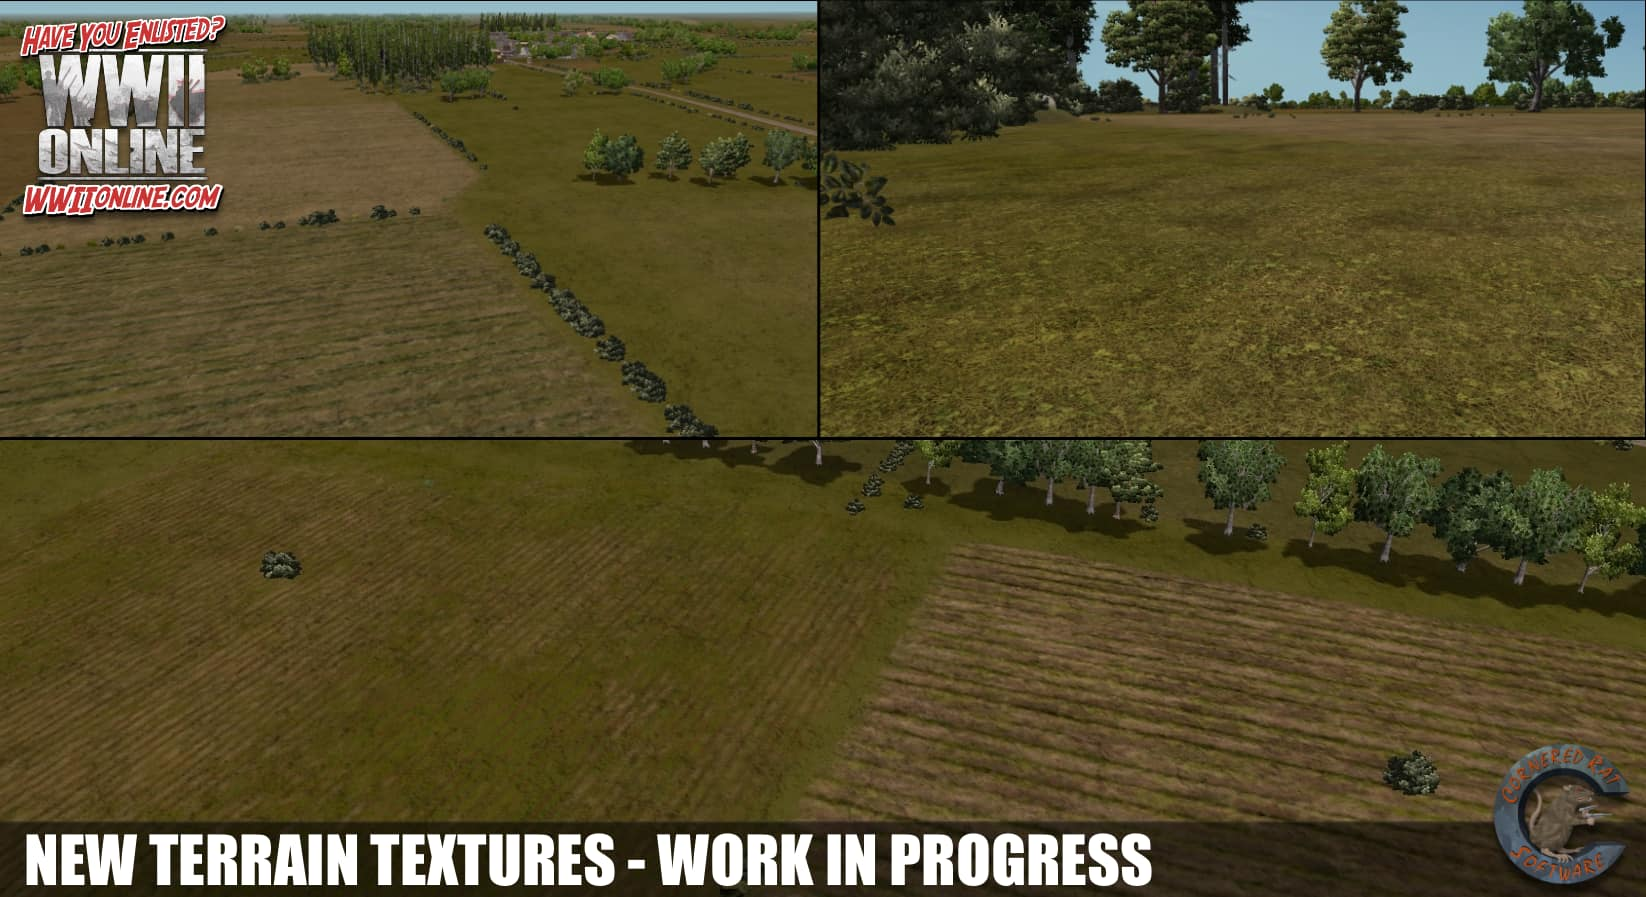 New terrain textures by PITTPETE